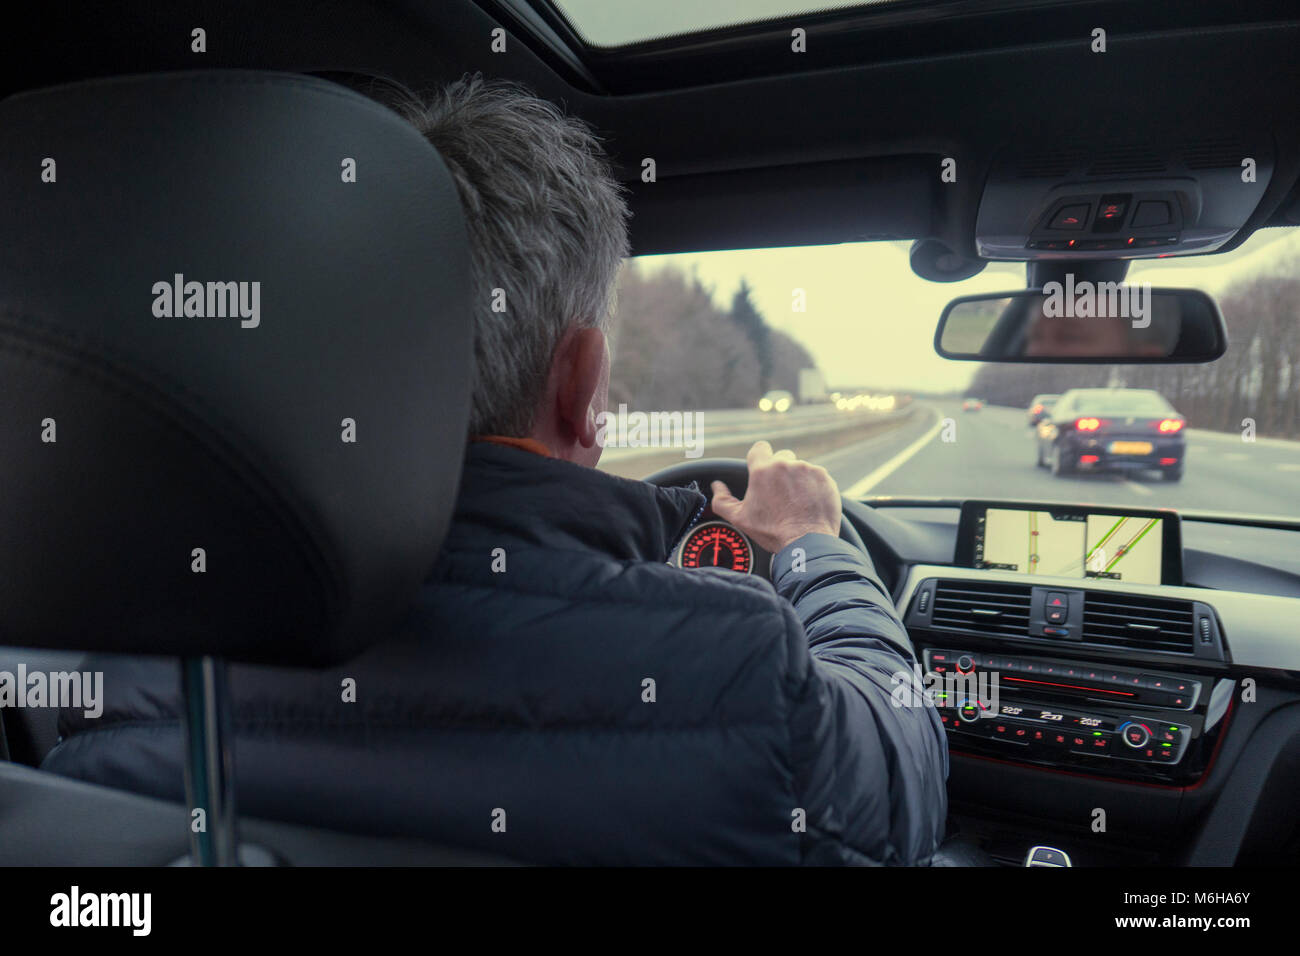 Man inside car driving on highway - Stock Image